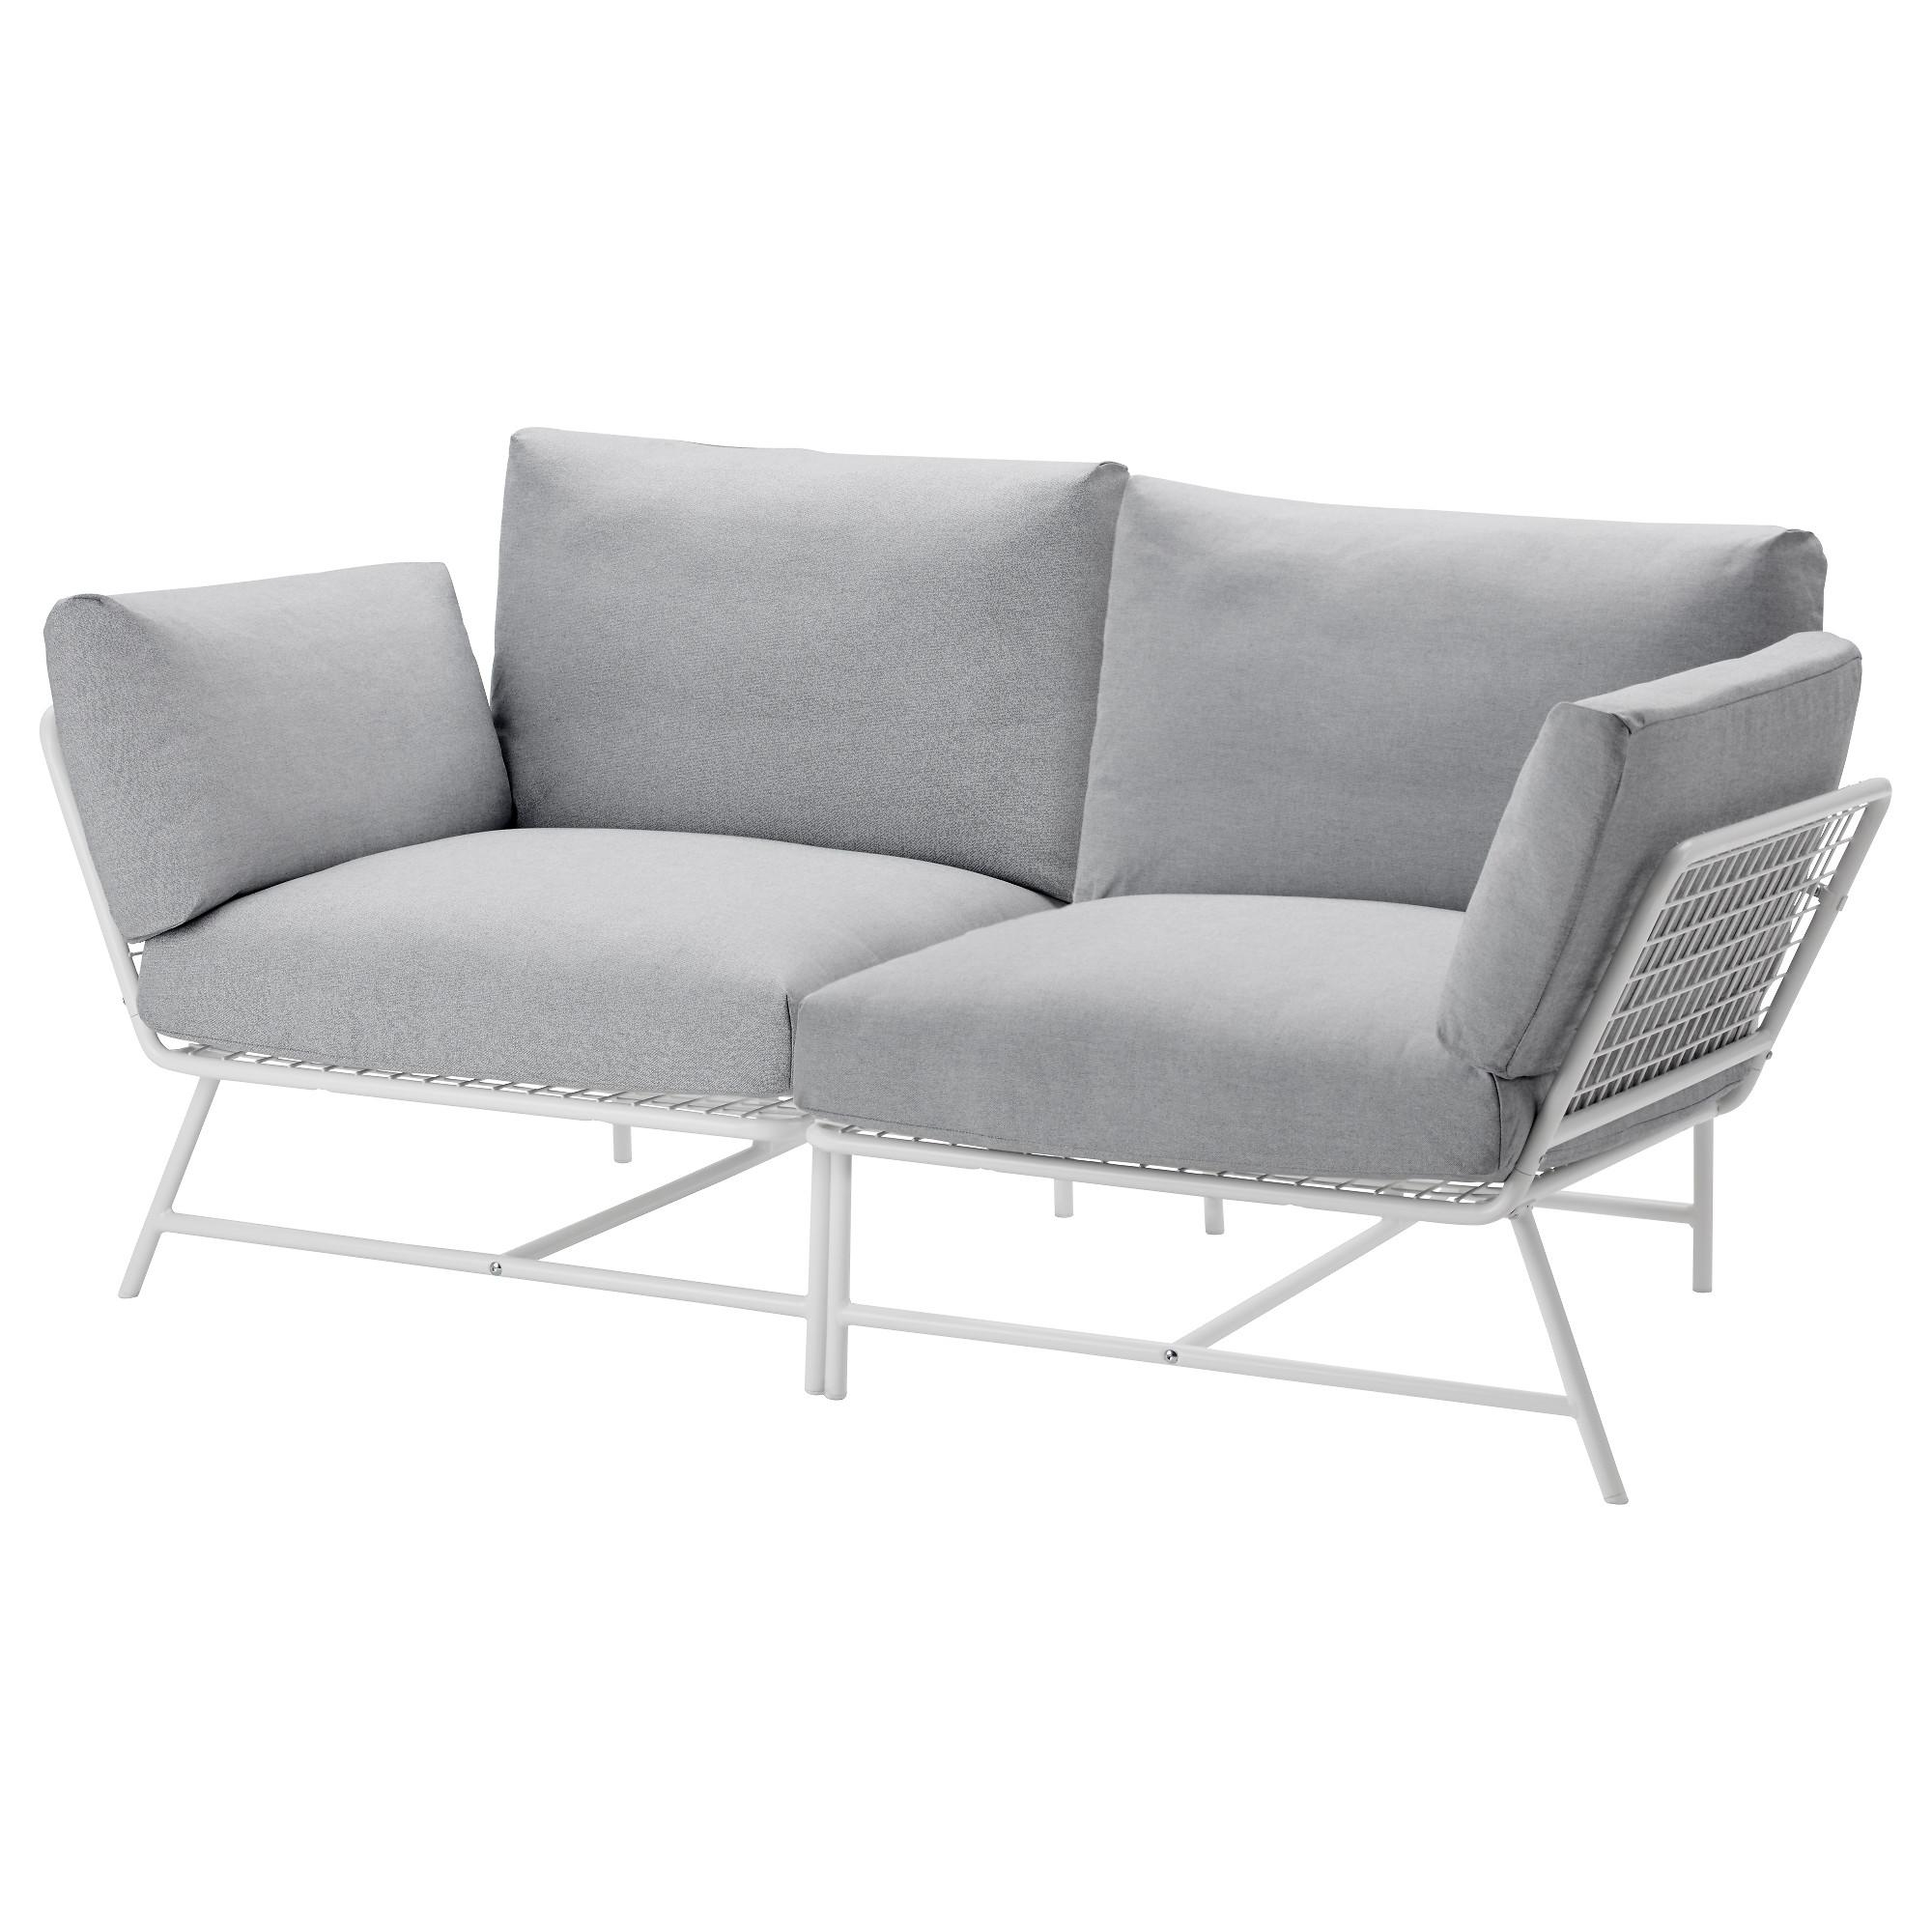 Small Sofa & 2 Seater Sofa | Ikea Intended For Small 2 Seater Sofas (Image 10 of 20)